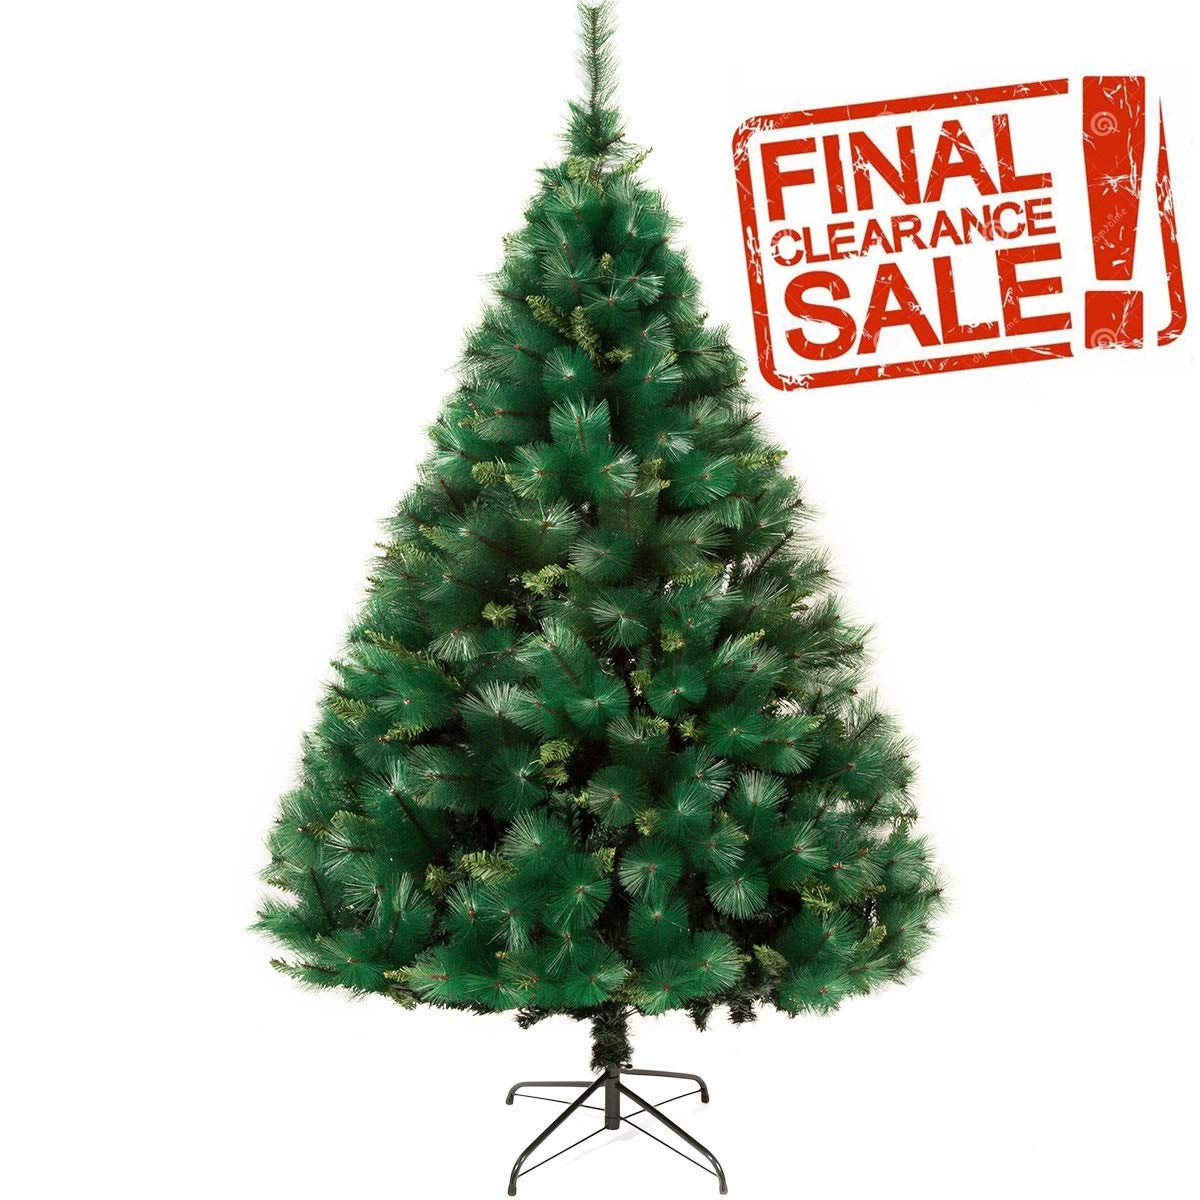 Artificial Christmas Tree Clearance.5 9 Foot Premium Spruce Hinged Artificial Christmas Tree With Sturdy Stand Eco Friendly Christmas Pine Tree 180cm